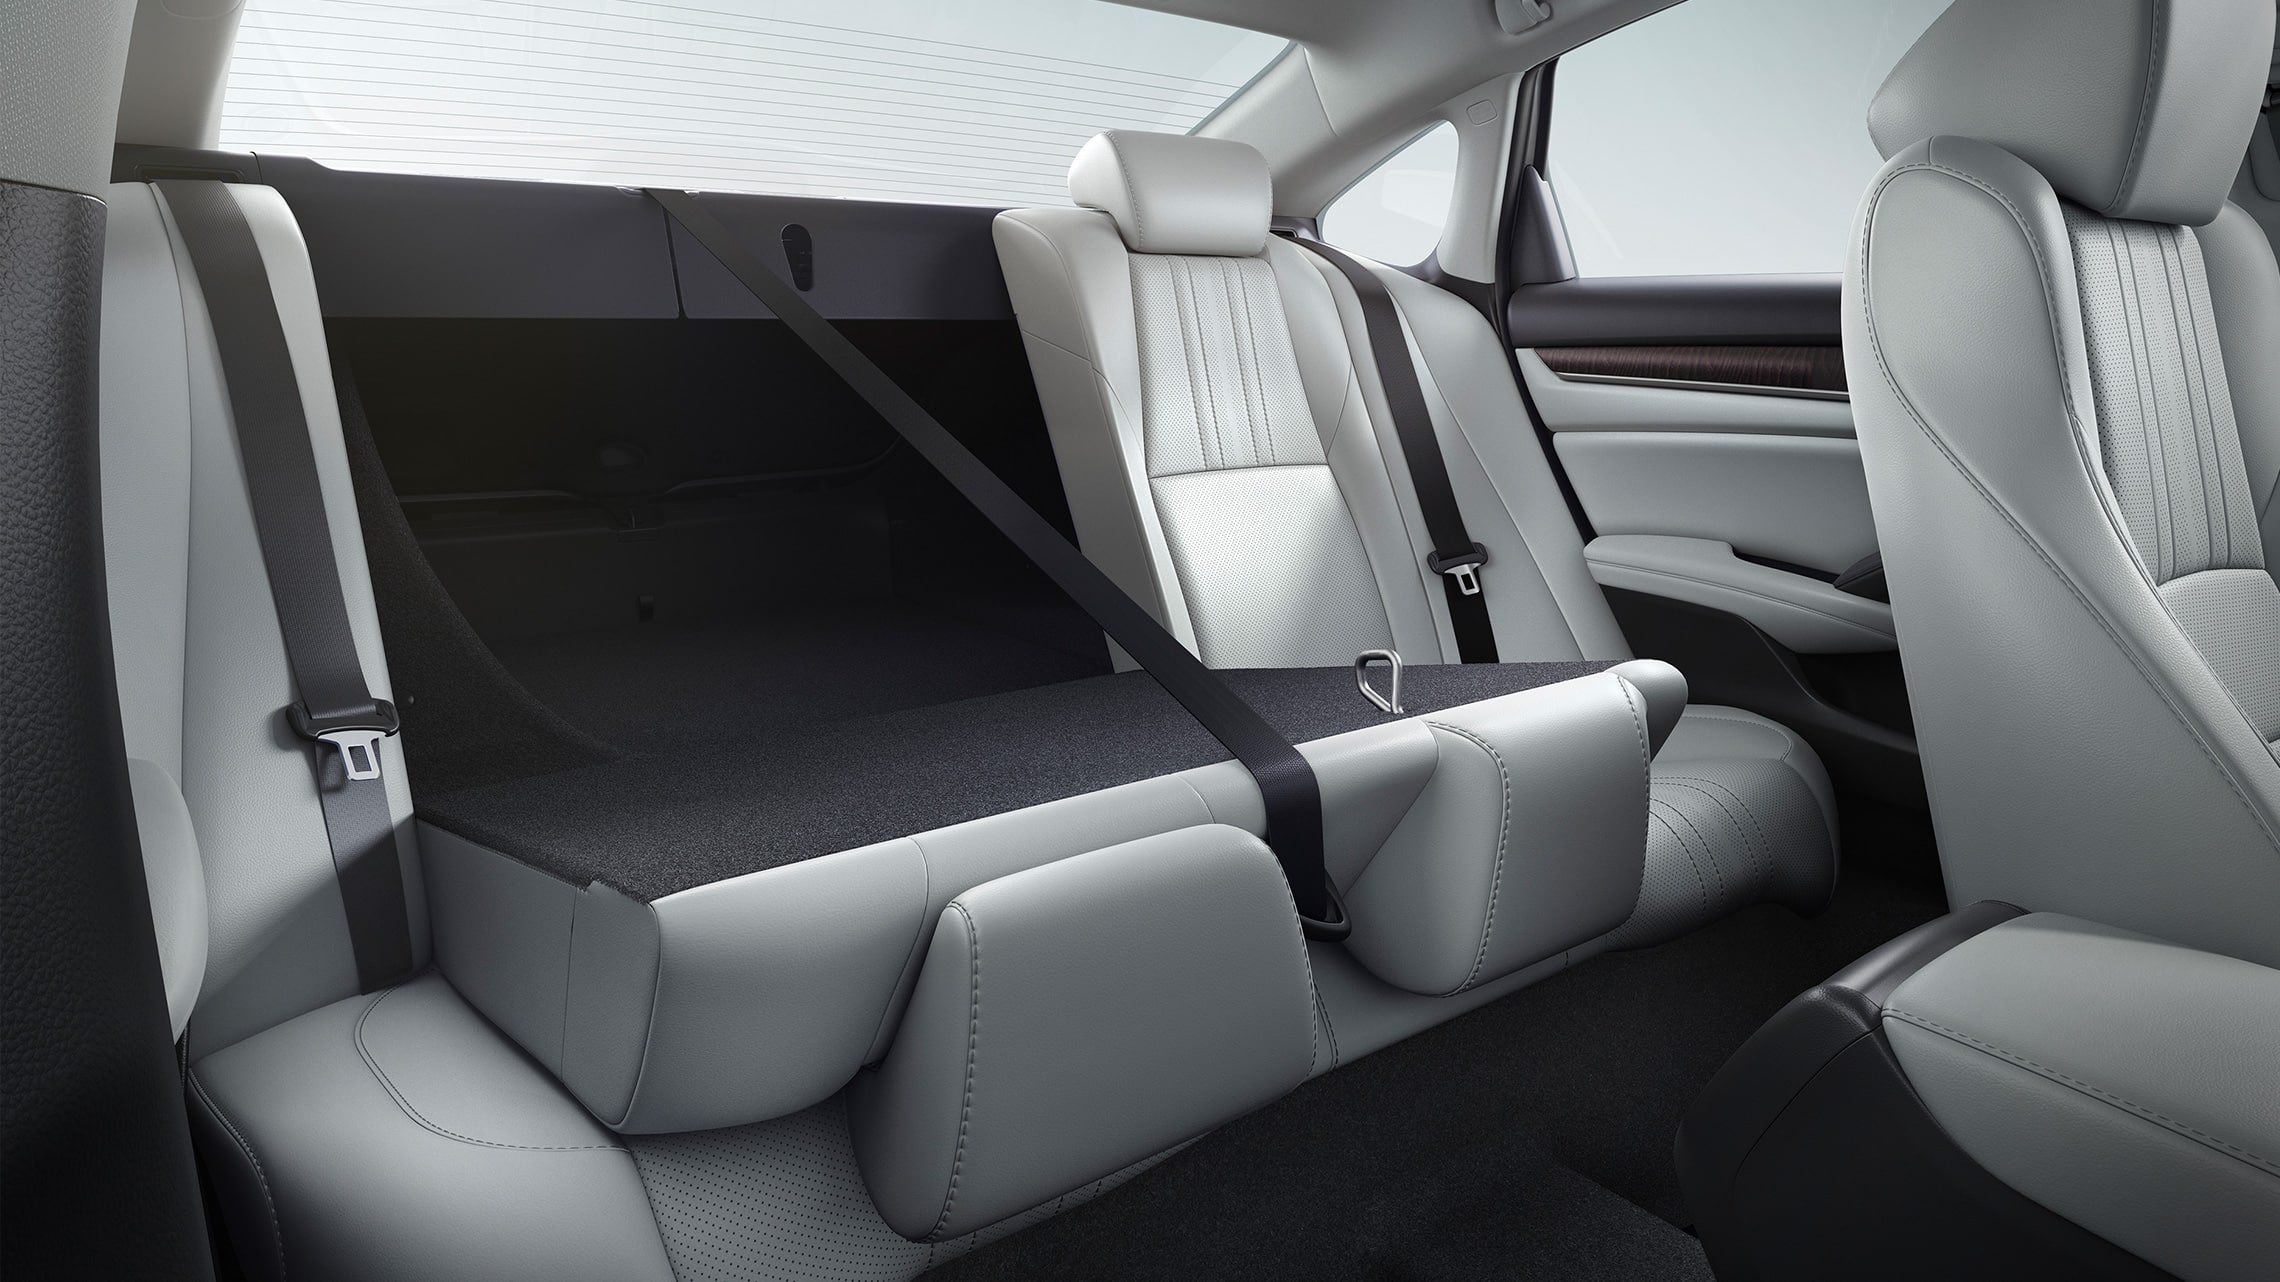 60/40 split fold-down rear seatback detail, shown partly folded down, in the 2020 Honda Accord Touring 2.0T with Ivory Leather.